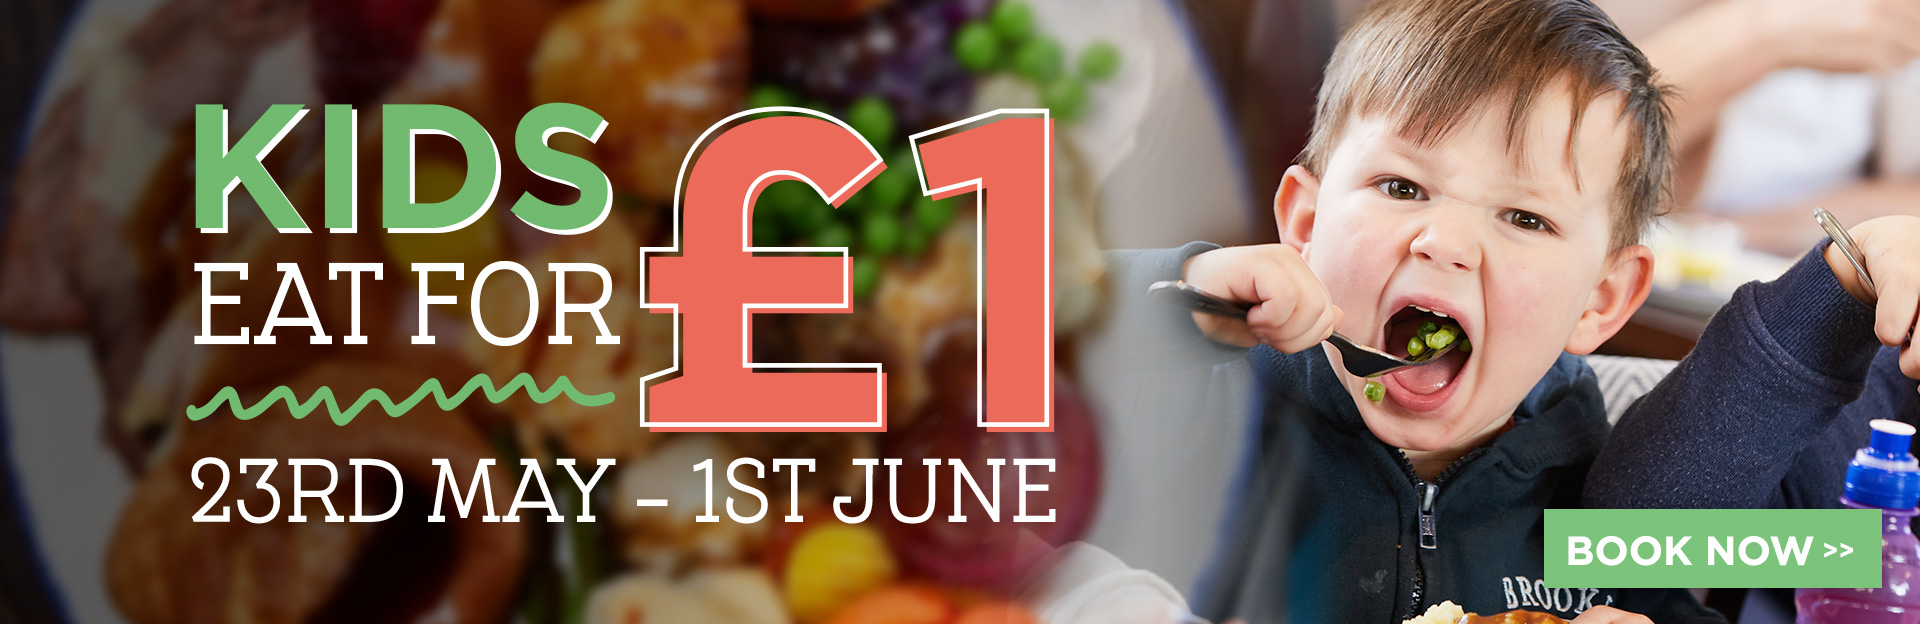 Kids eat for £1 at The Kings Arms